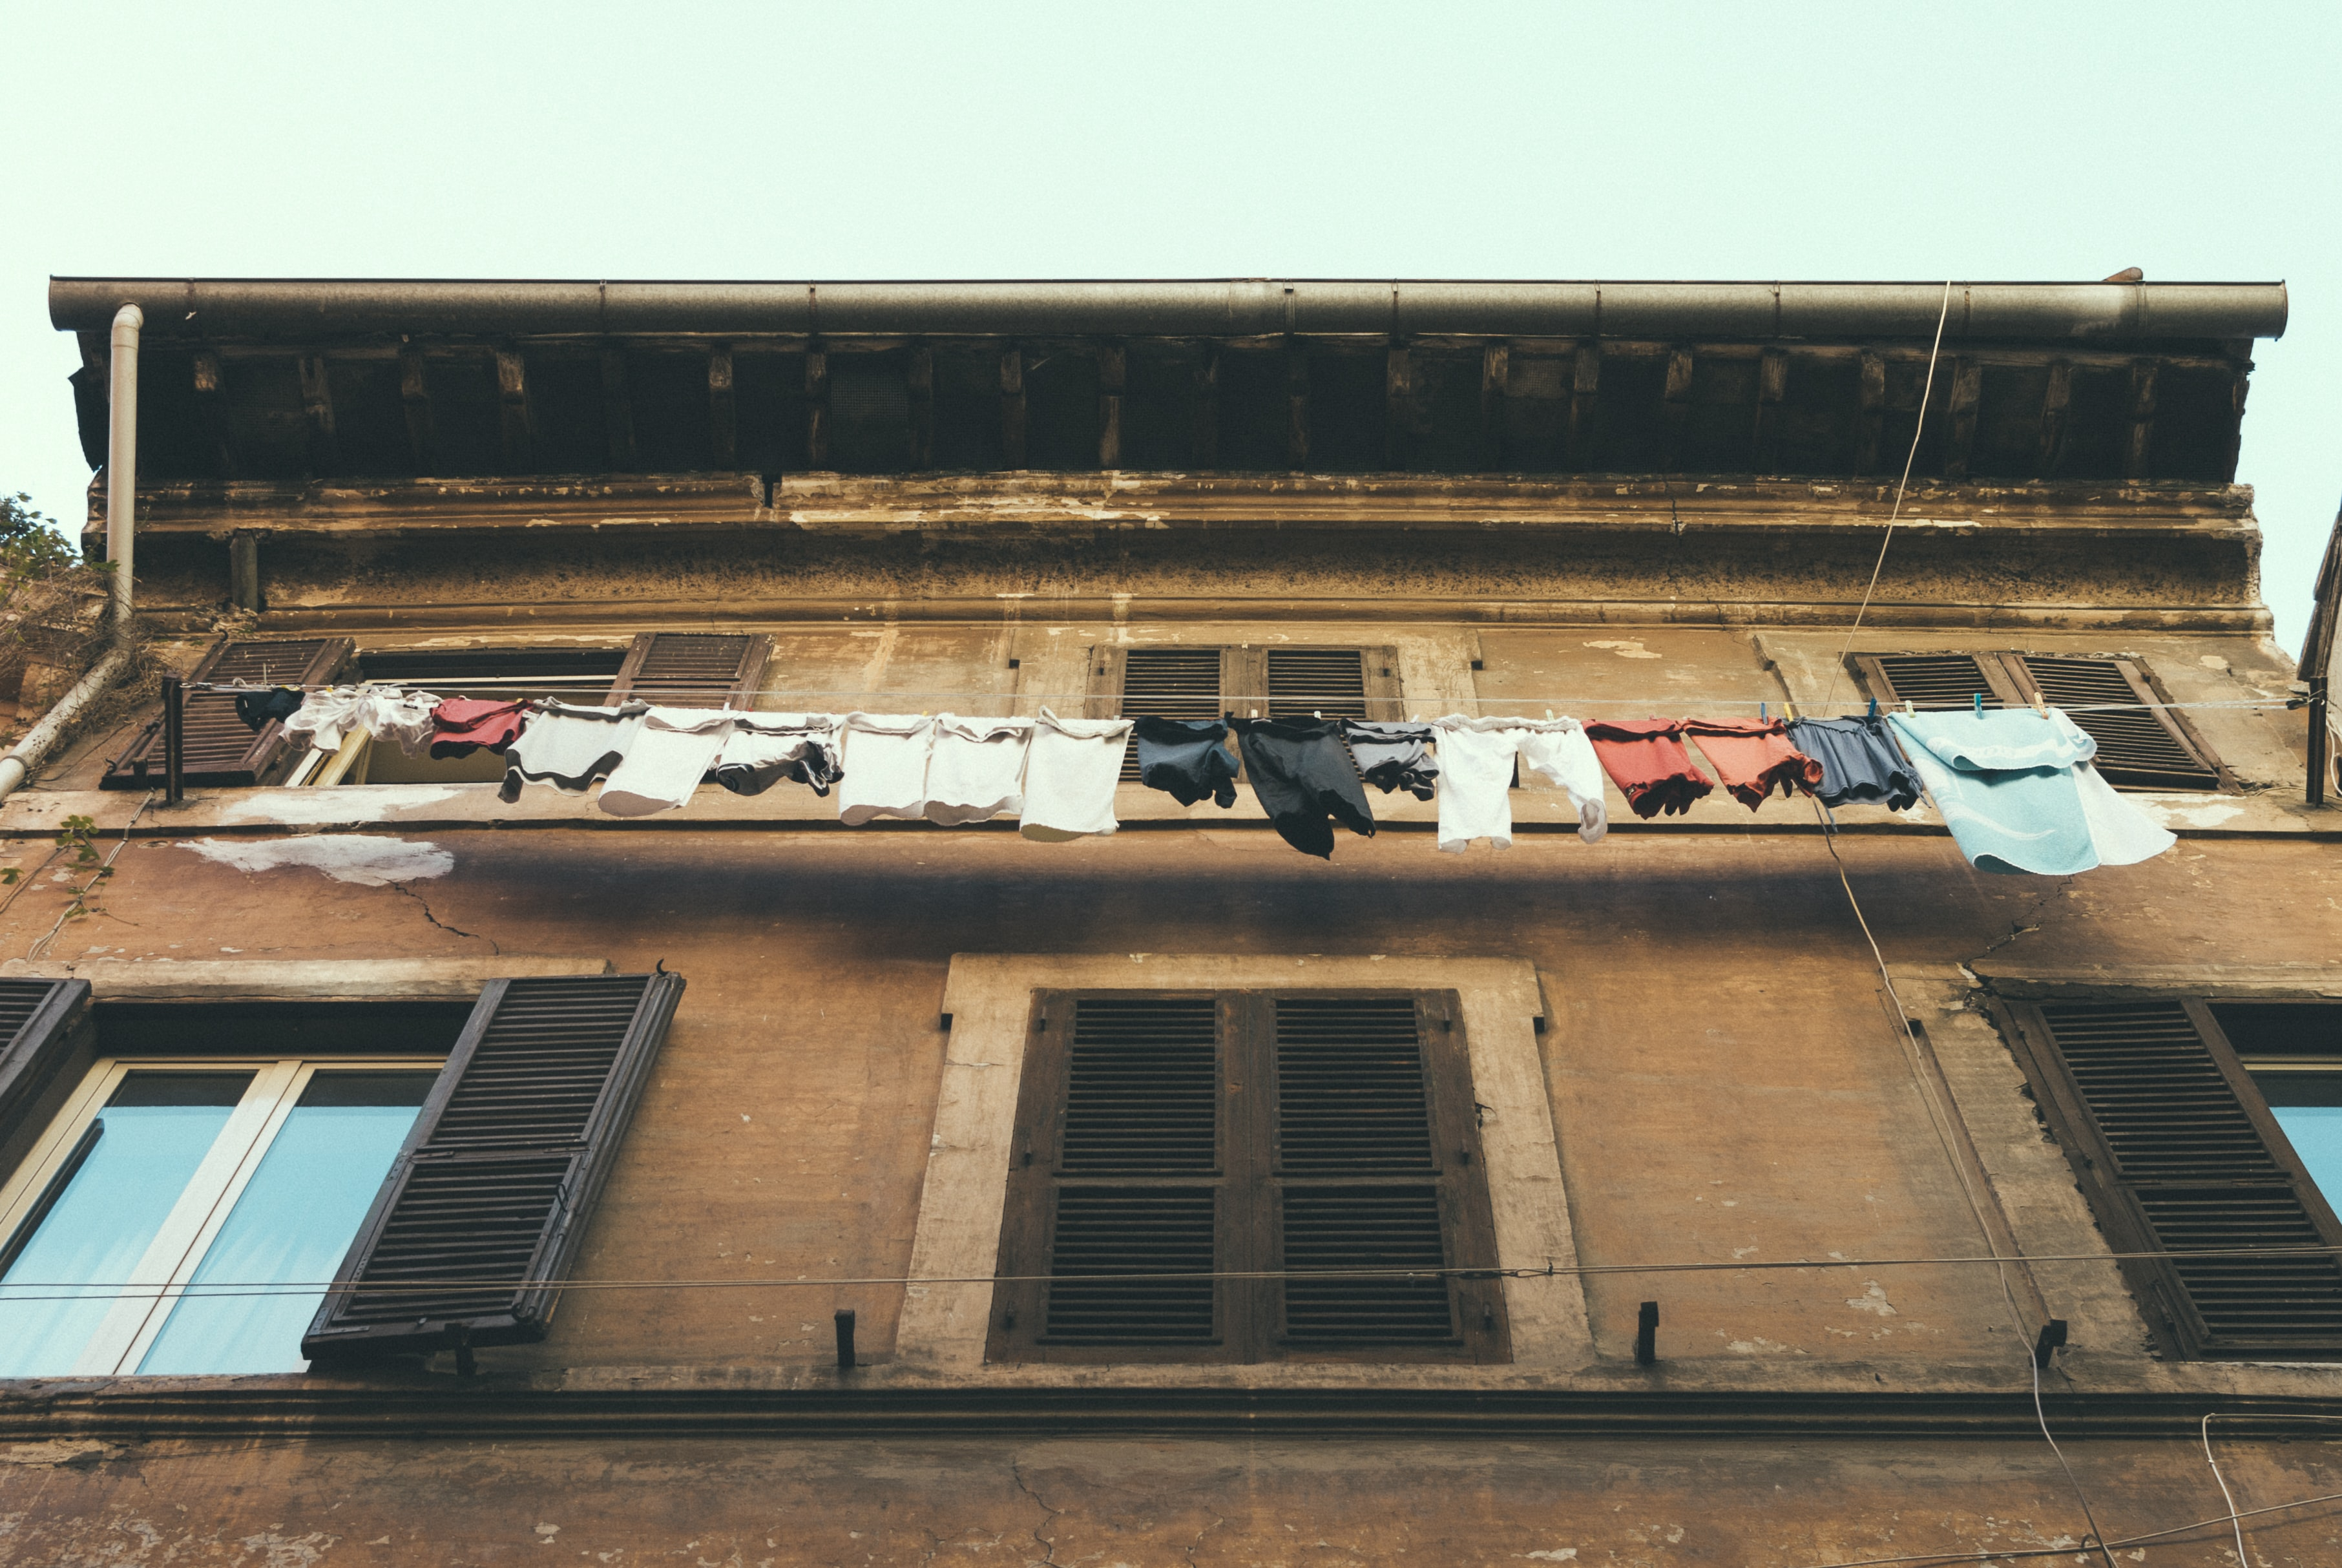 Clothes are drying on a long clothesline at an old building with wooden window shutters.